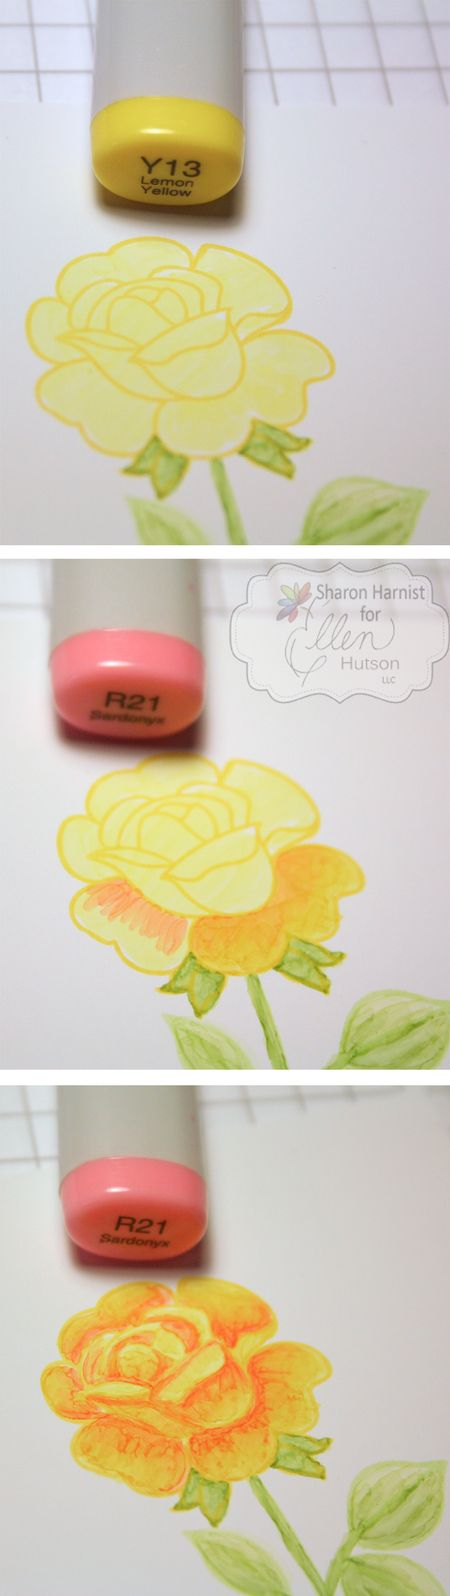 8-CopicWatercolorRose1-3-SH